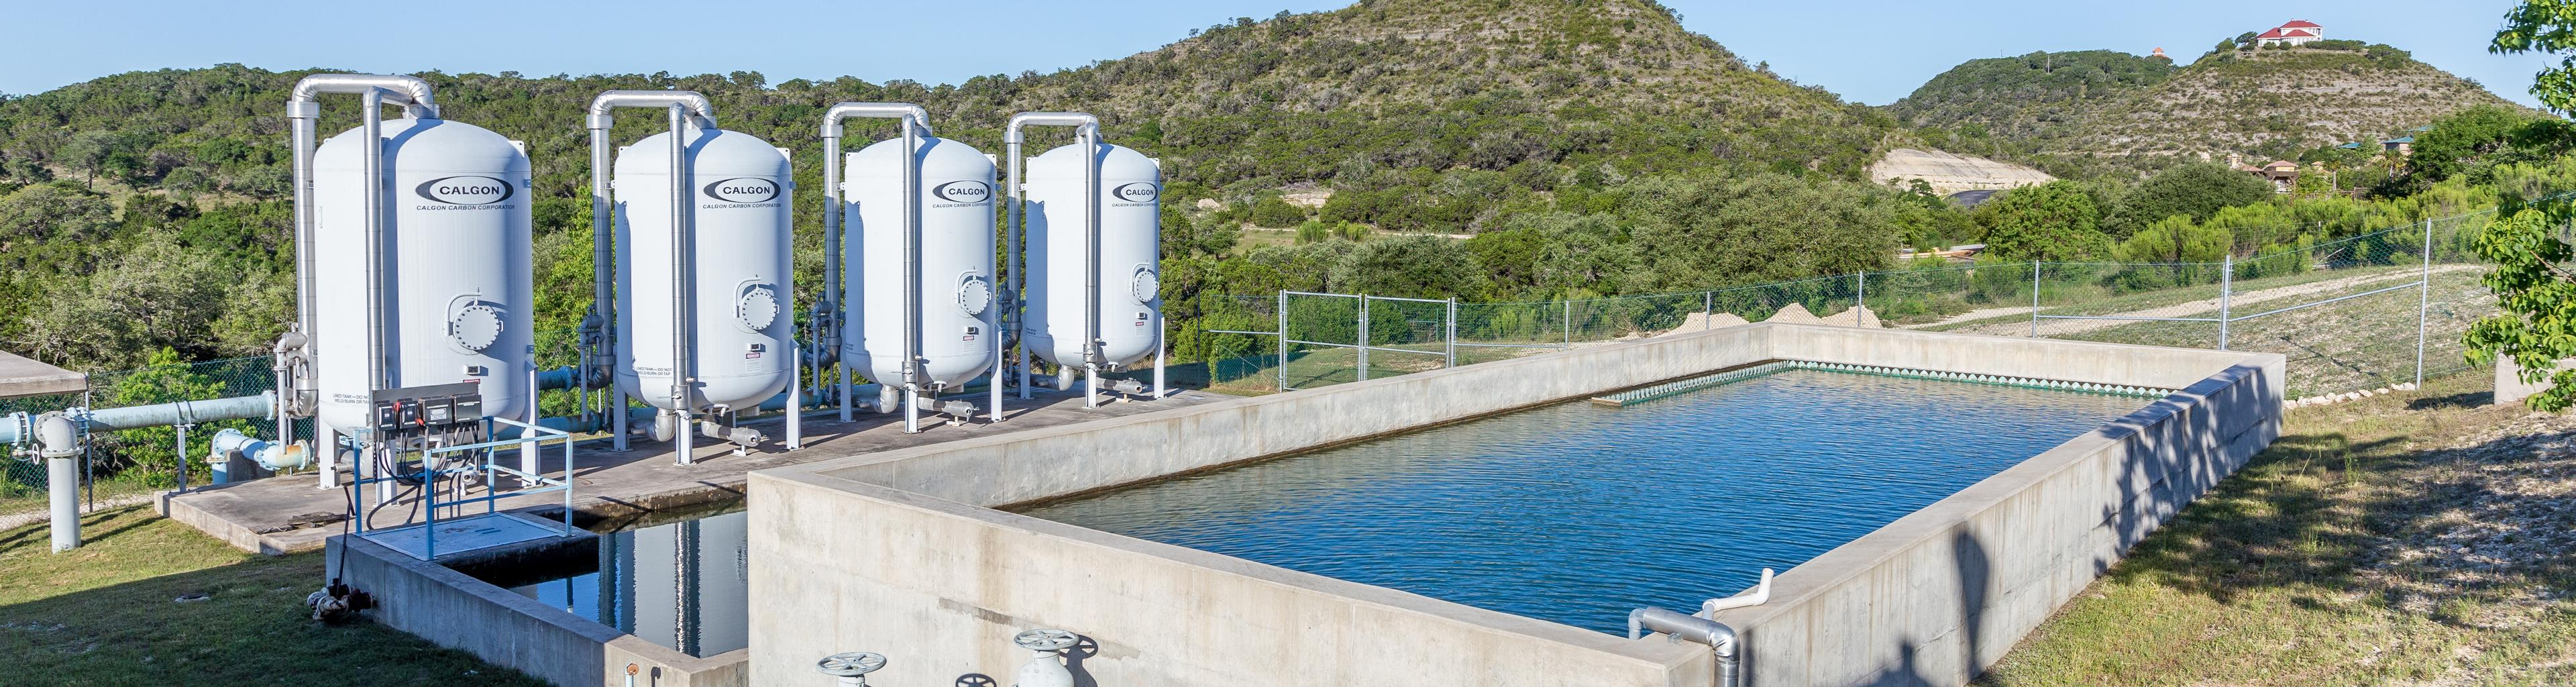 Backwash Lagoons and Pressure Filter Vessels